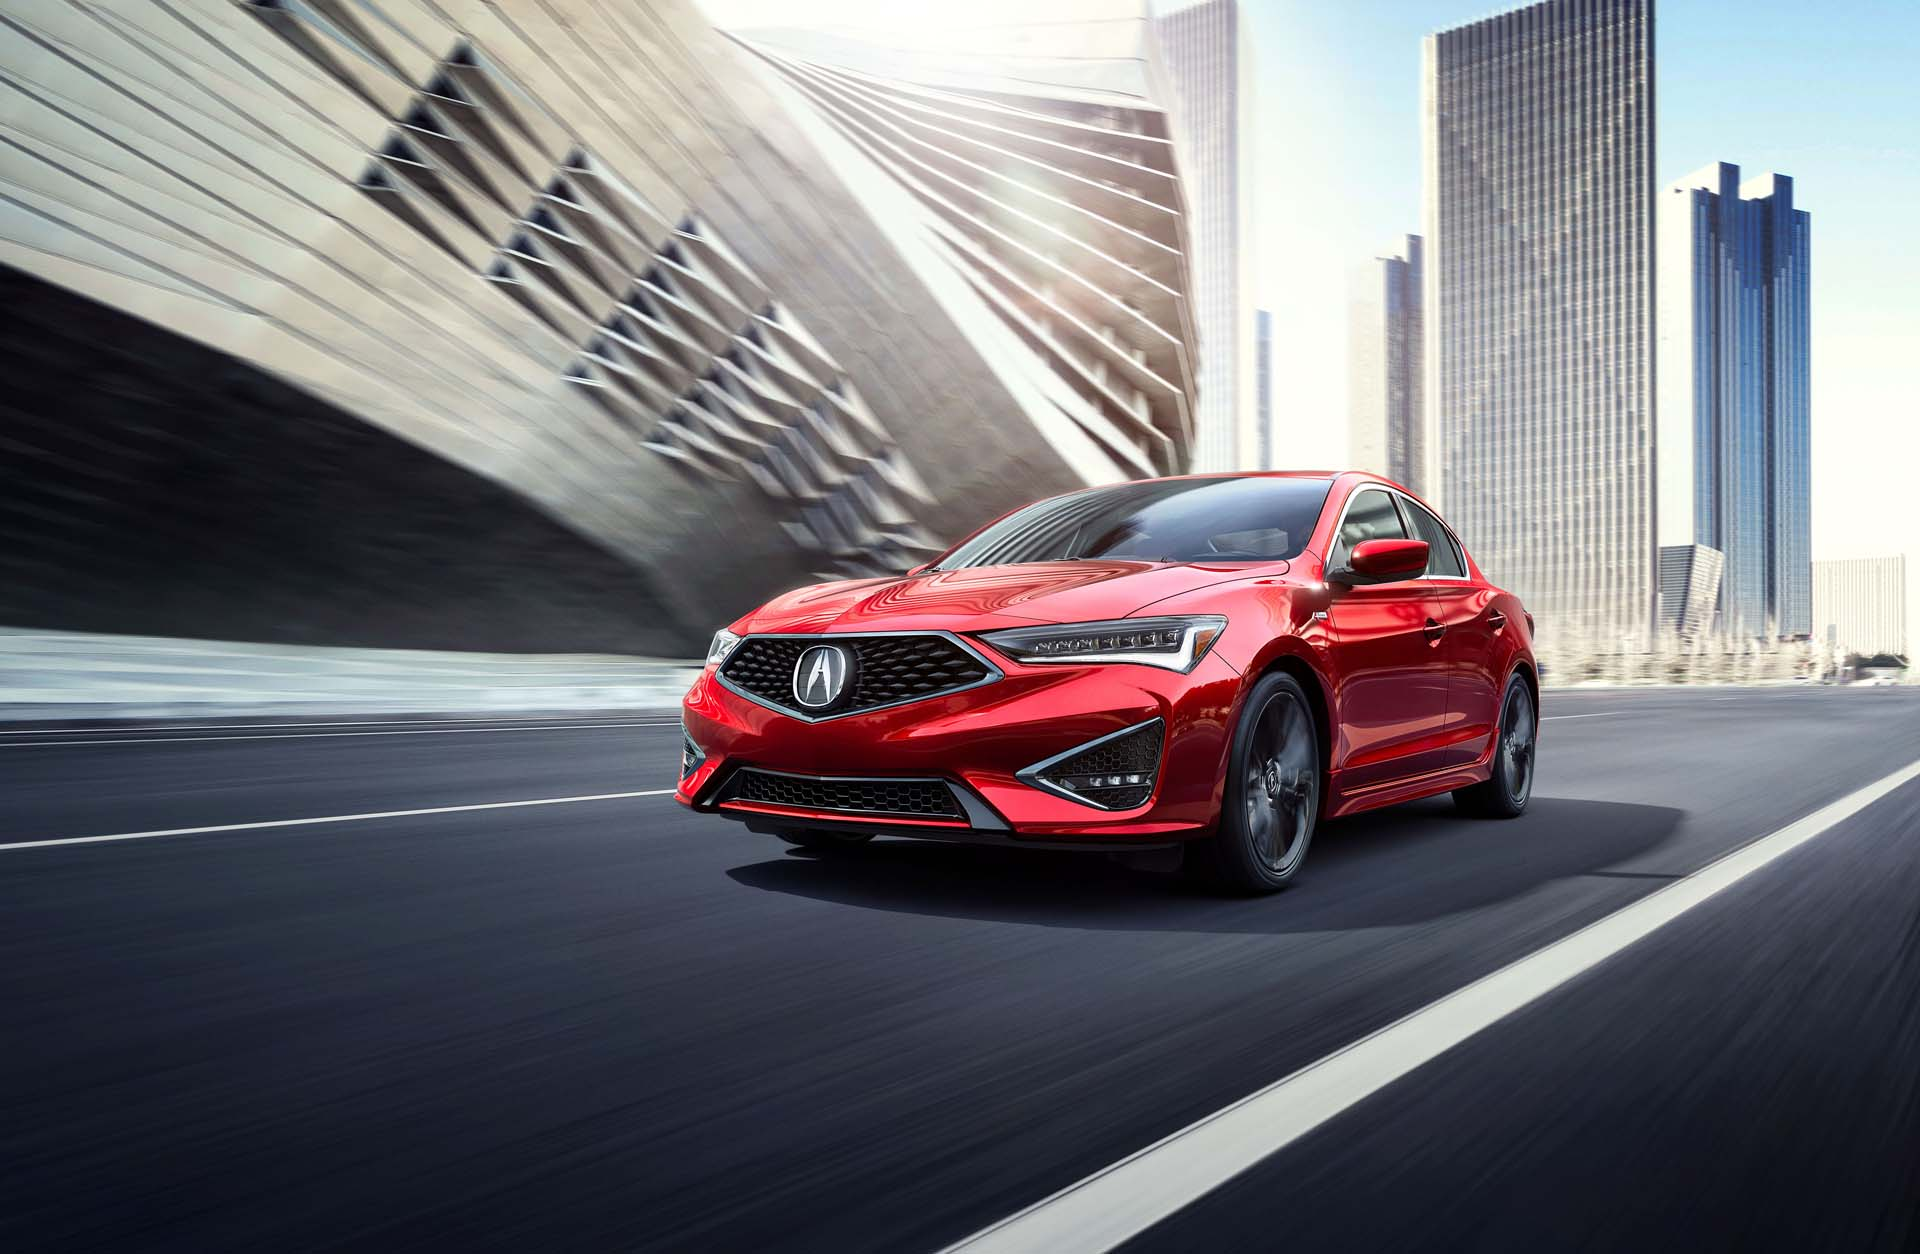 What are the 2019 Acura ILX's Exterior Color Options?